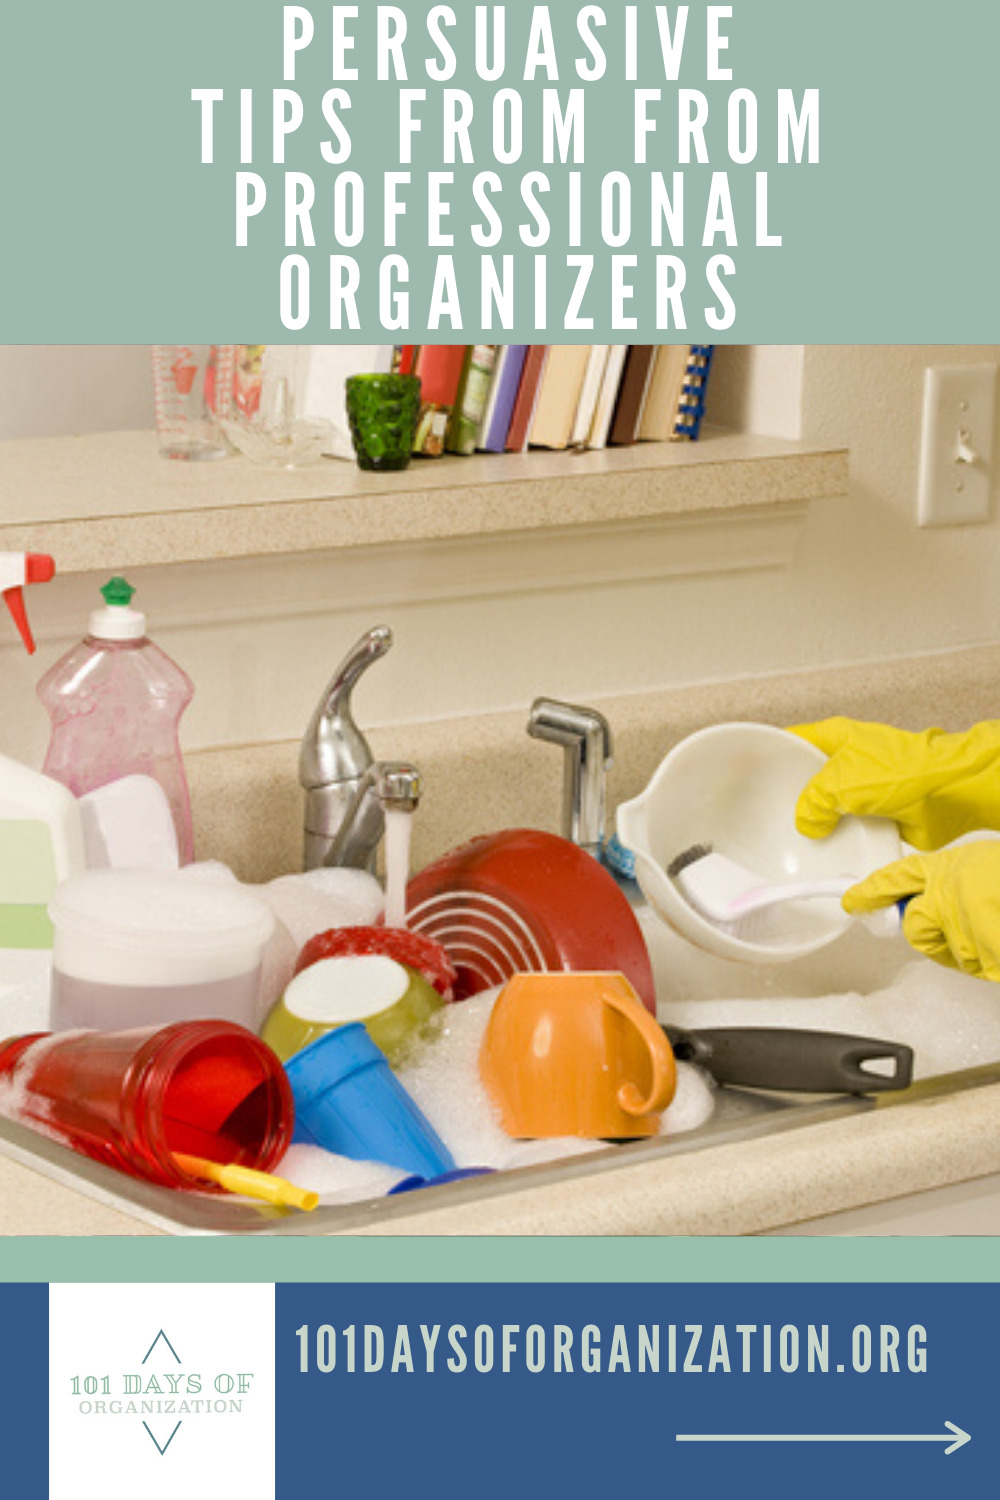 You don't have be a hoarder to benefit from a professional organizer. We all have busy schedules and need help getting more organized. Now with these 10 tips that professional organizers refuse to share, you will be a pro at getting your time back on track! #hoarders #clutter